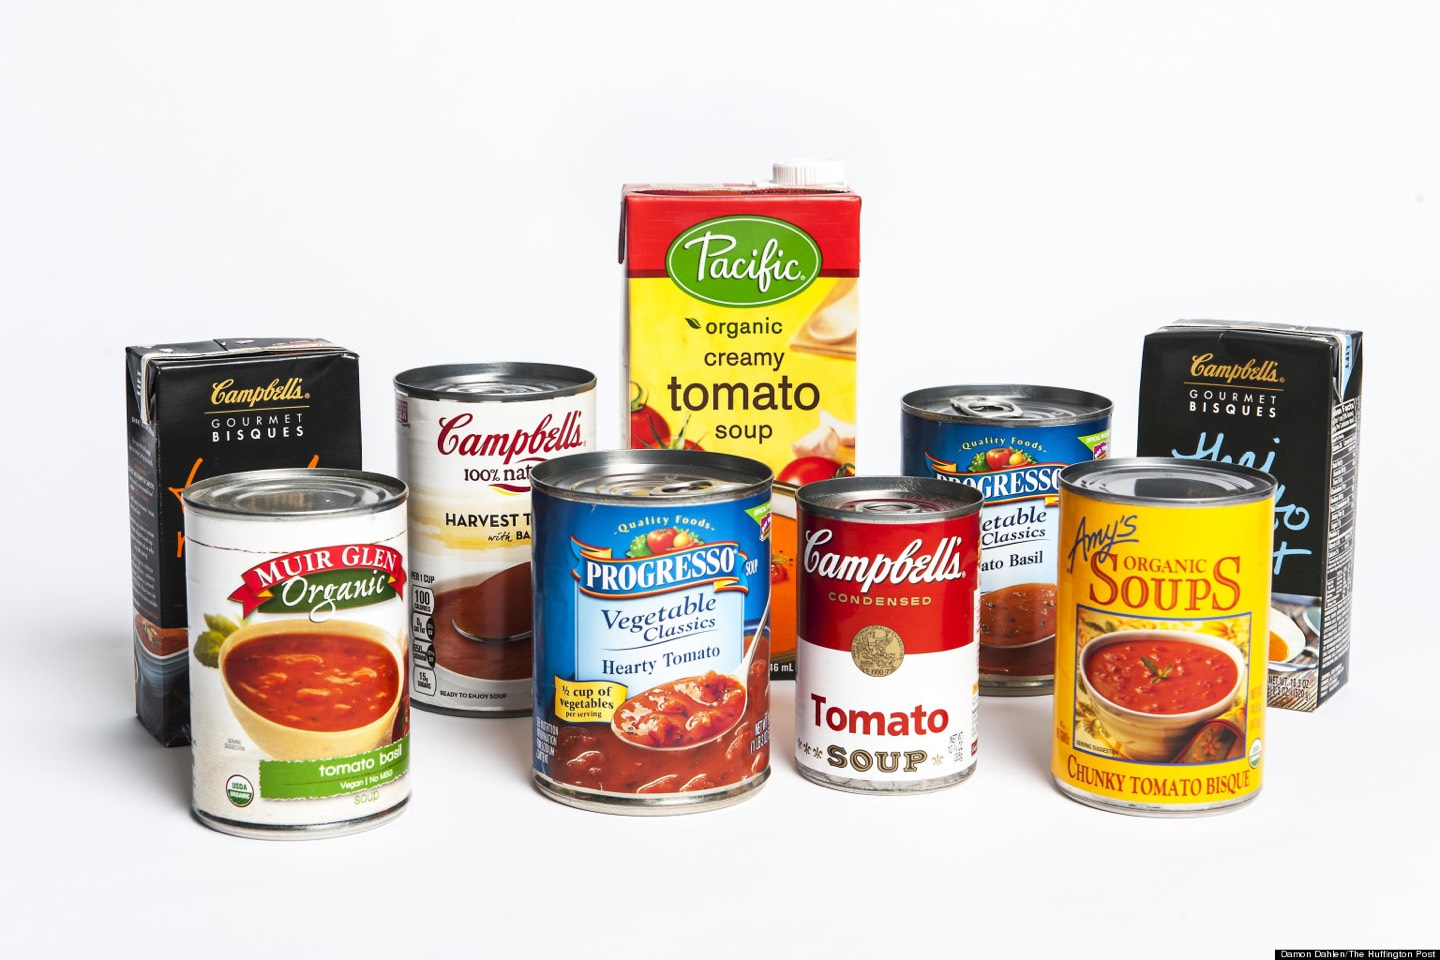 Canned Soup You've heard about canned soups being high in sodium,but did you know it's also filled with sweet stuff?Sugar is added as a preservative to many canned soups and you can find up to 15 grams of sugar per 1.5 cups in certain varieties check the labels before buying